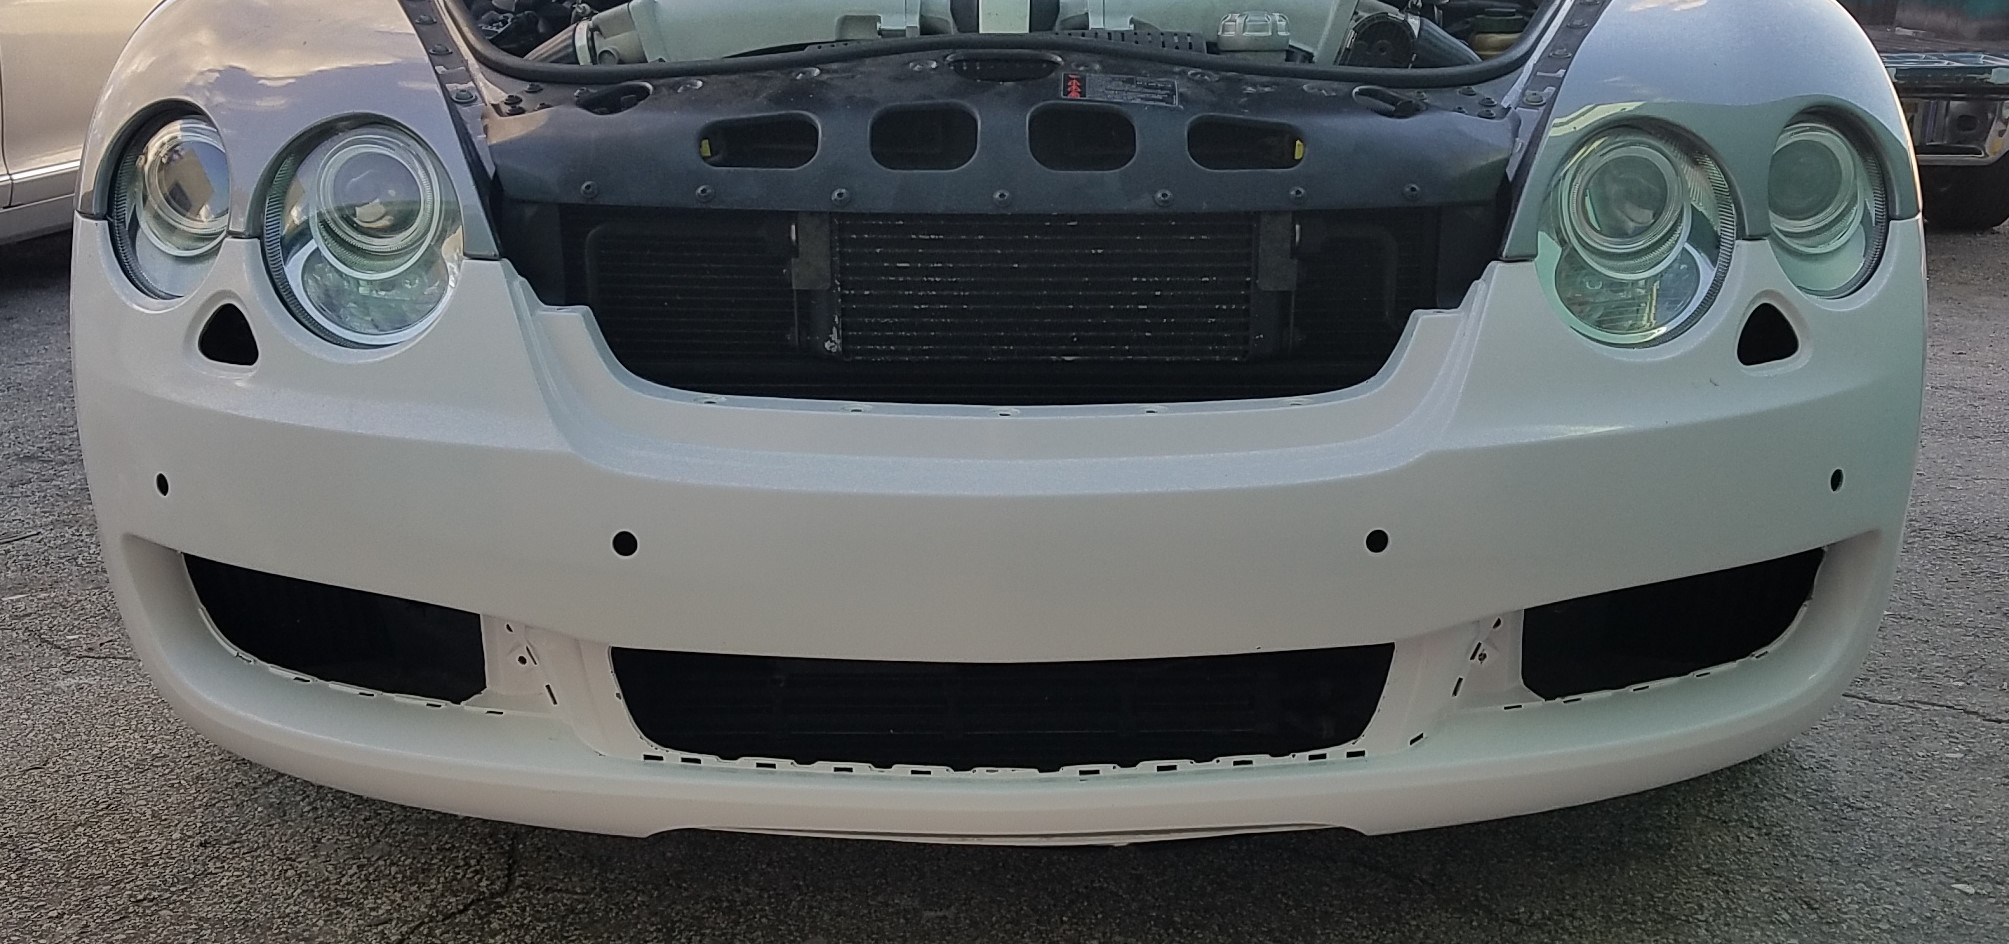 Acura TL Acura Tl Front Bumper Images Acura Car Photos And - 2007 acura tl front bumper